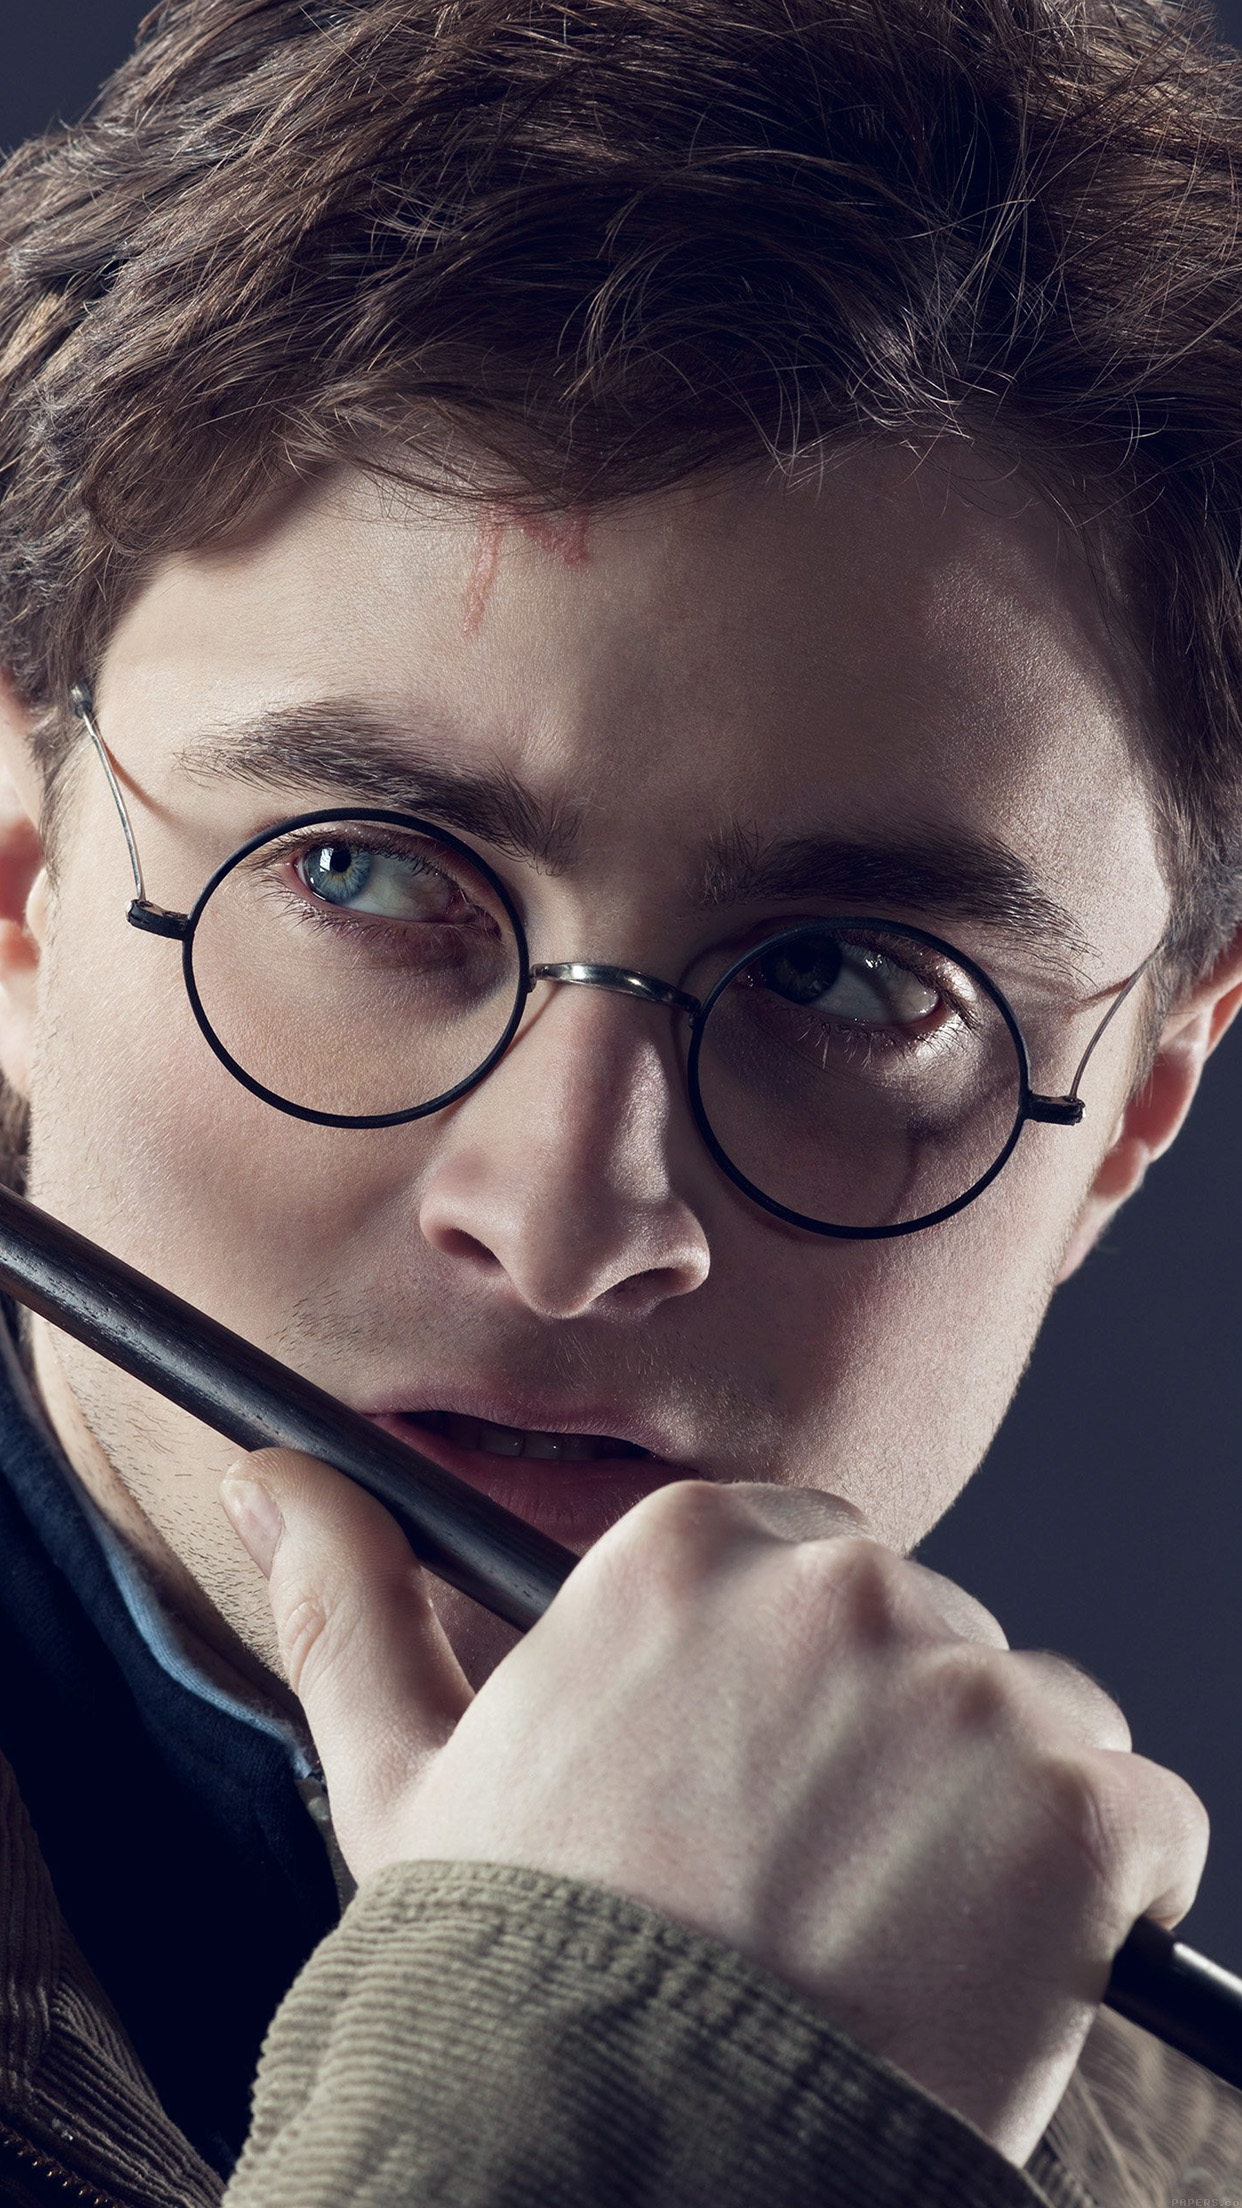 Harry Potter Daniel Radcliffe Celebrity Android Wallpaper